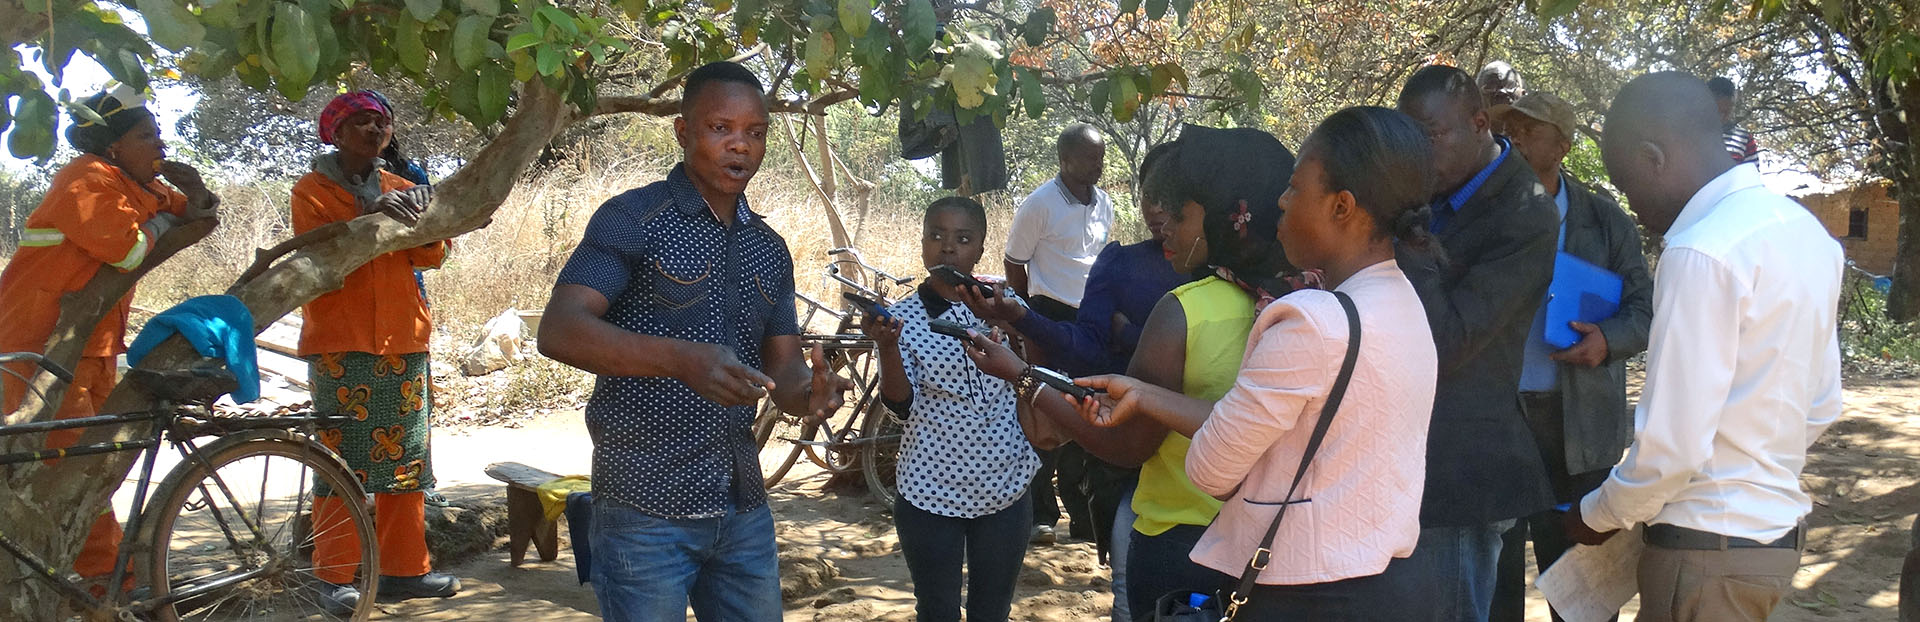 Pastoral circle and social apostolate activities in Zambia